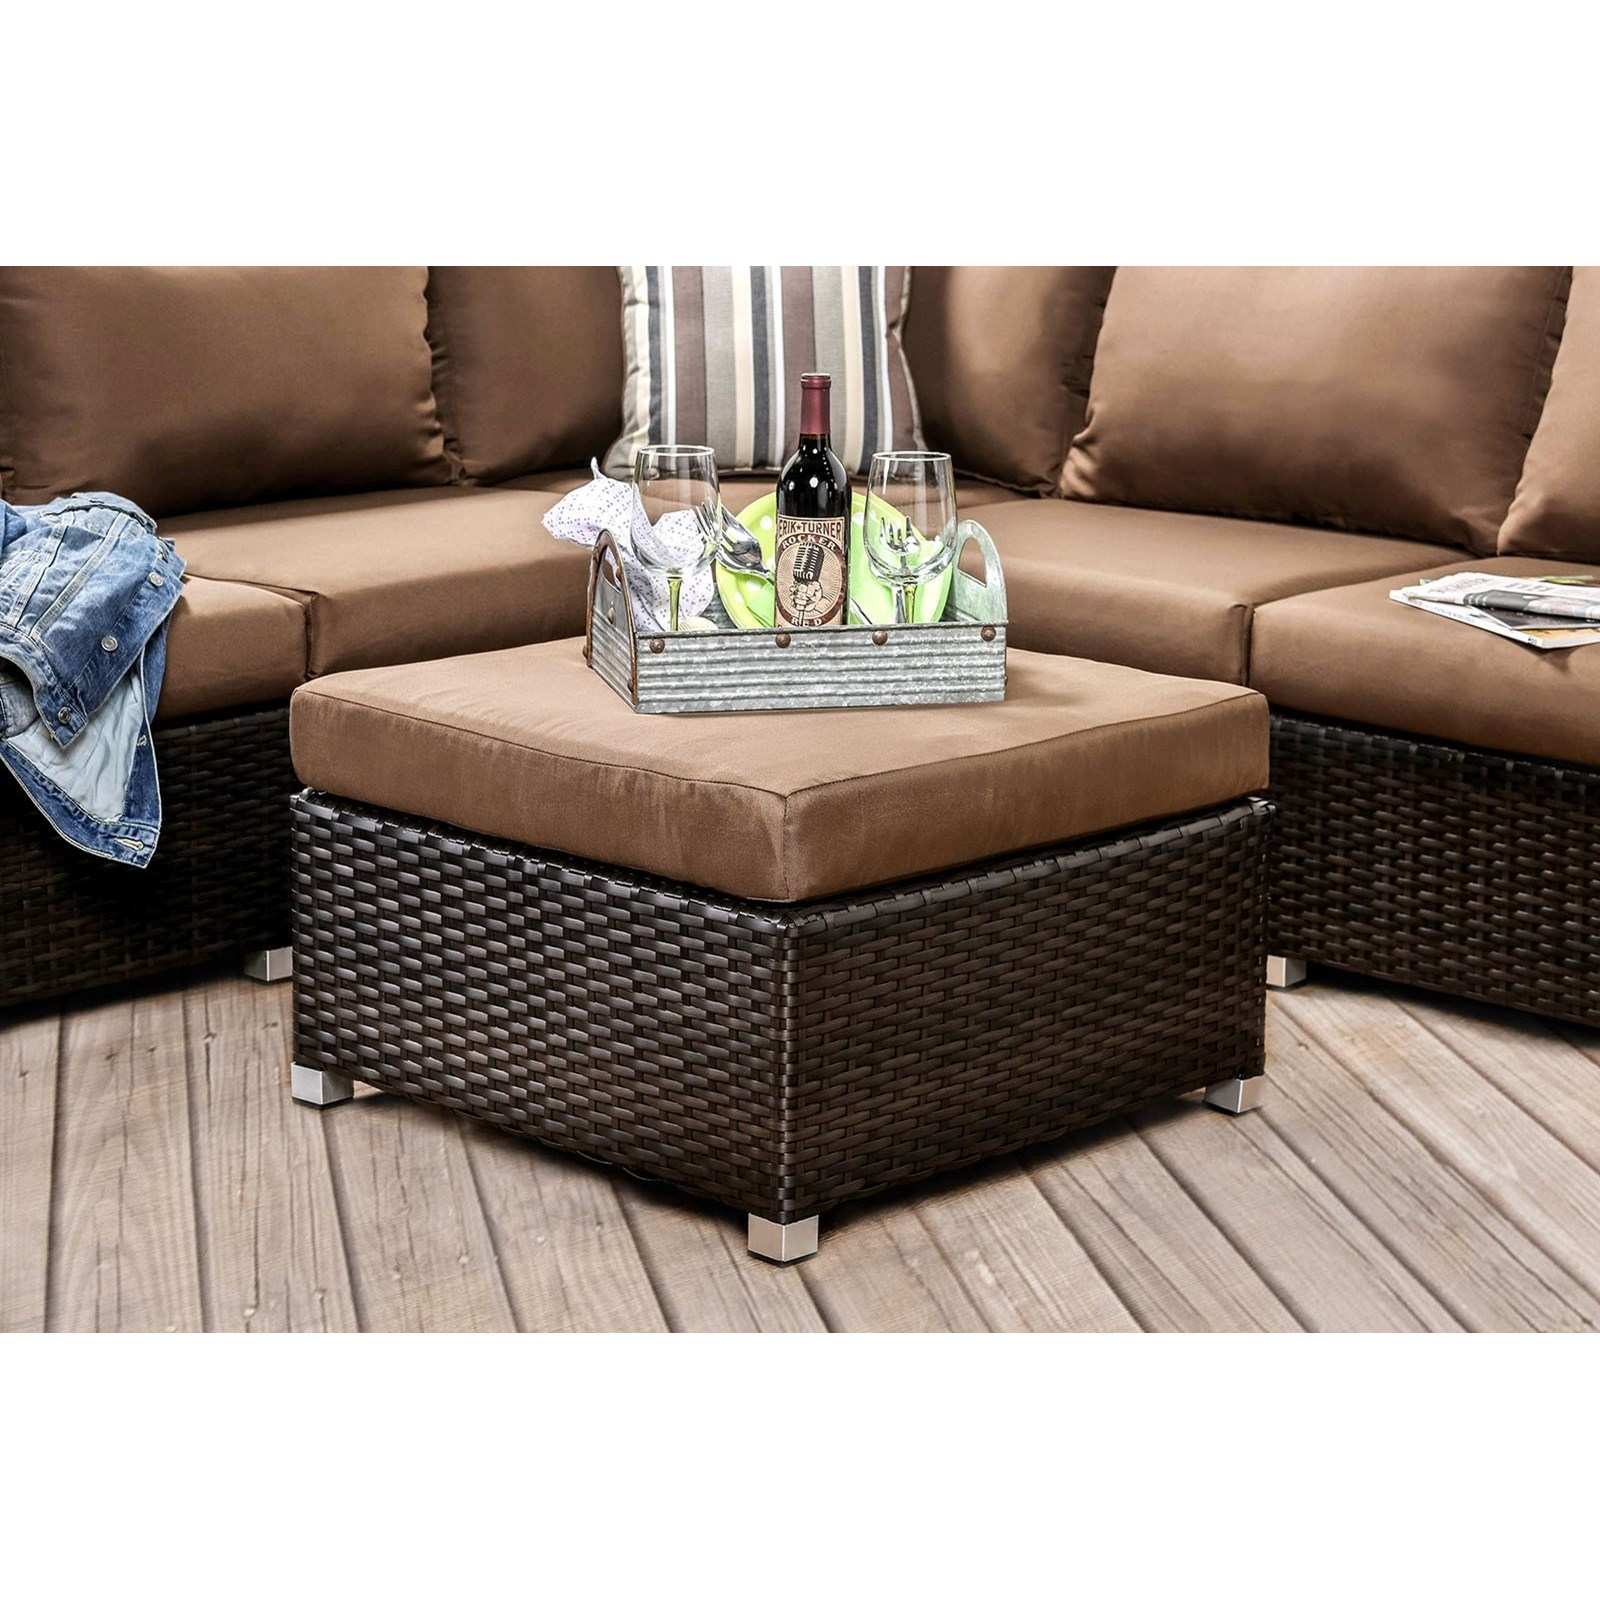 Abion Ottoman, Corner Chair by Furniture of America at Nassau Furniture and Mattress